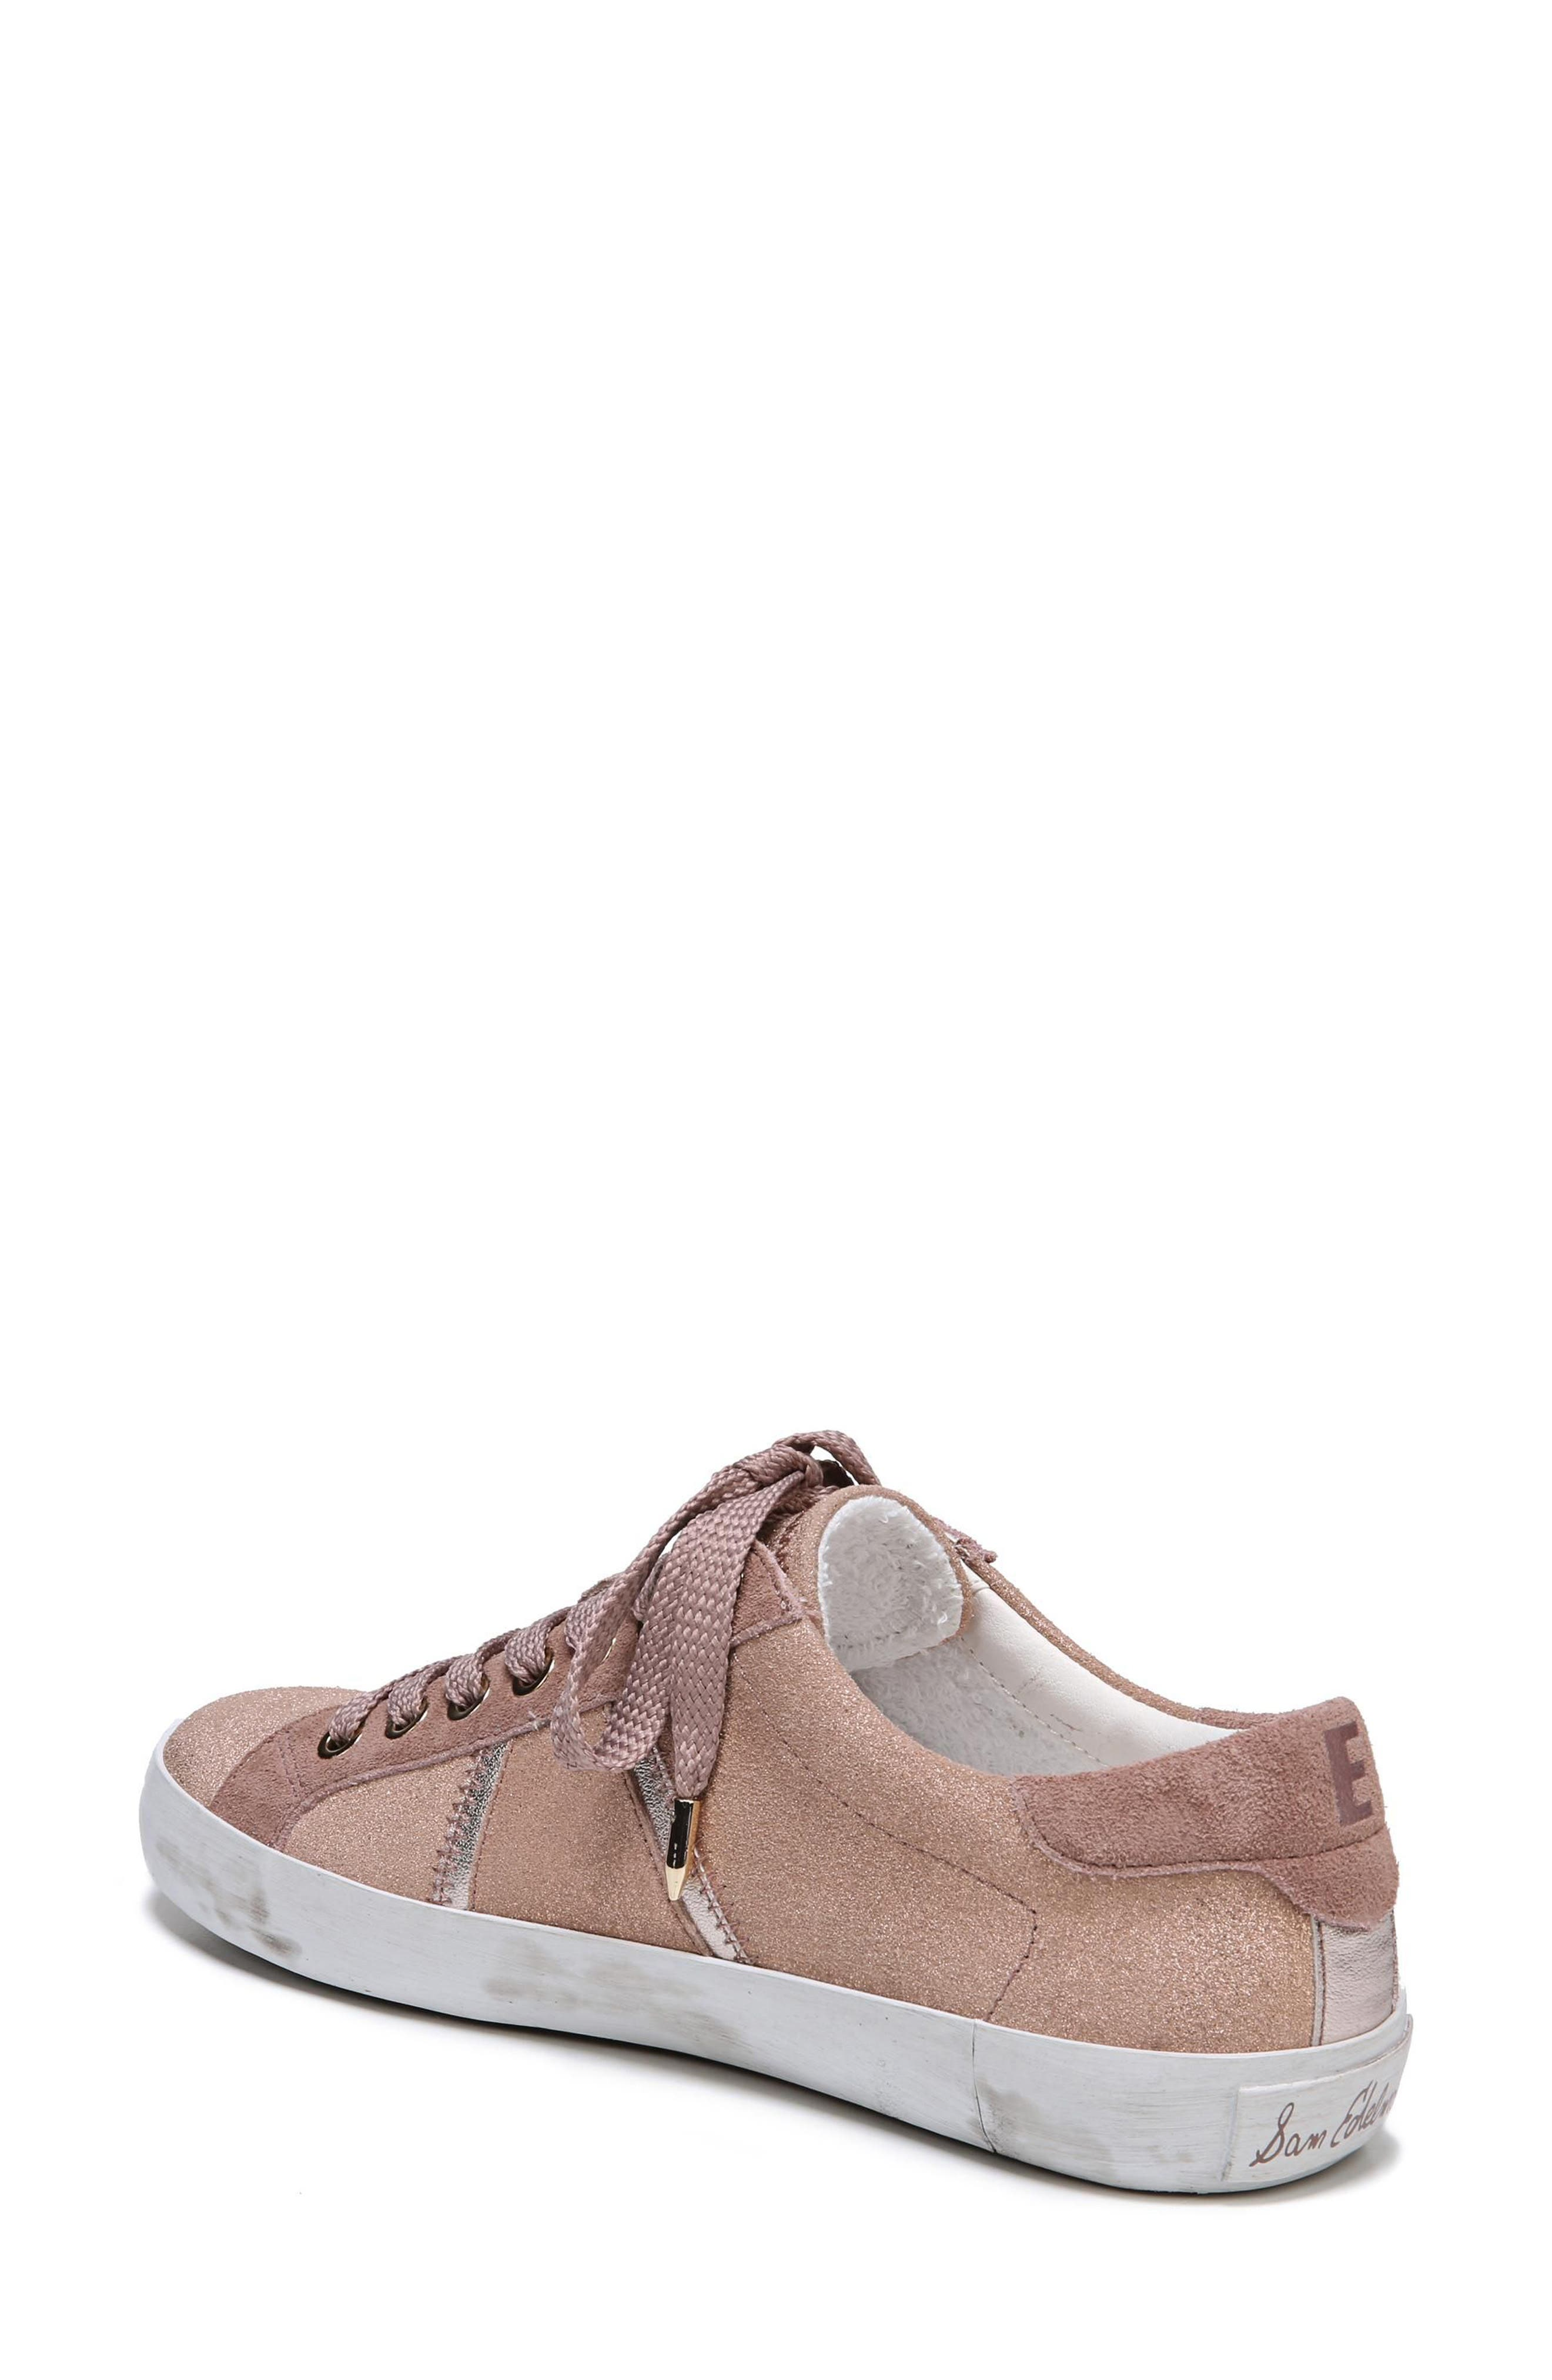 Baylee Sneaker,                             Alternate thumbnail 2, color,                             Blush Suede